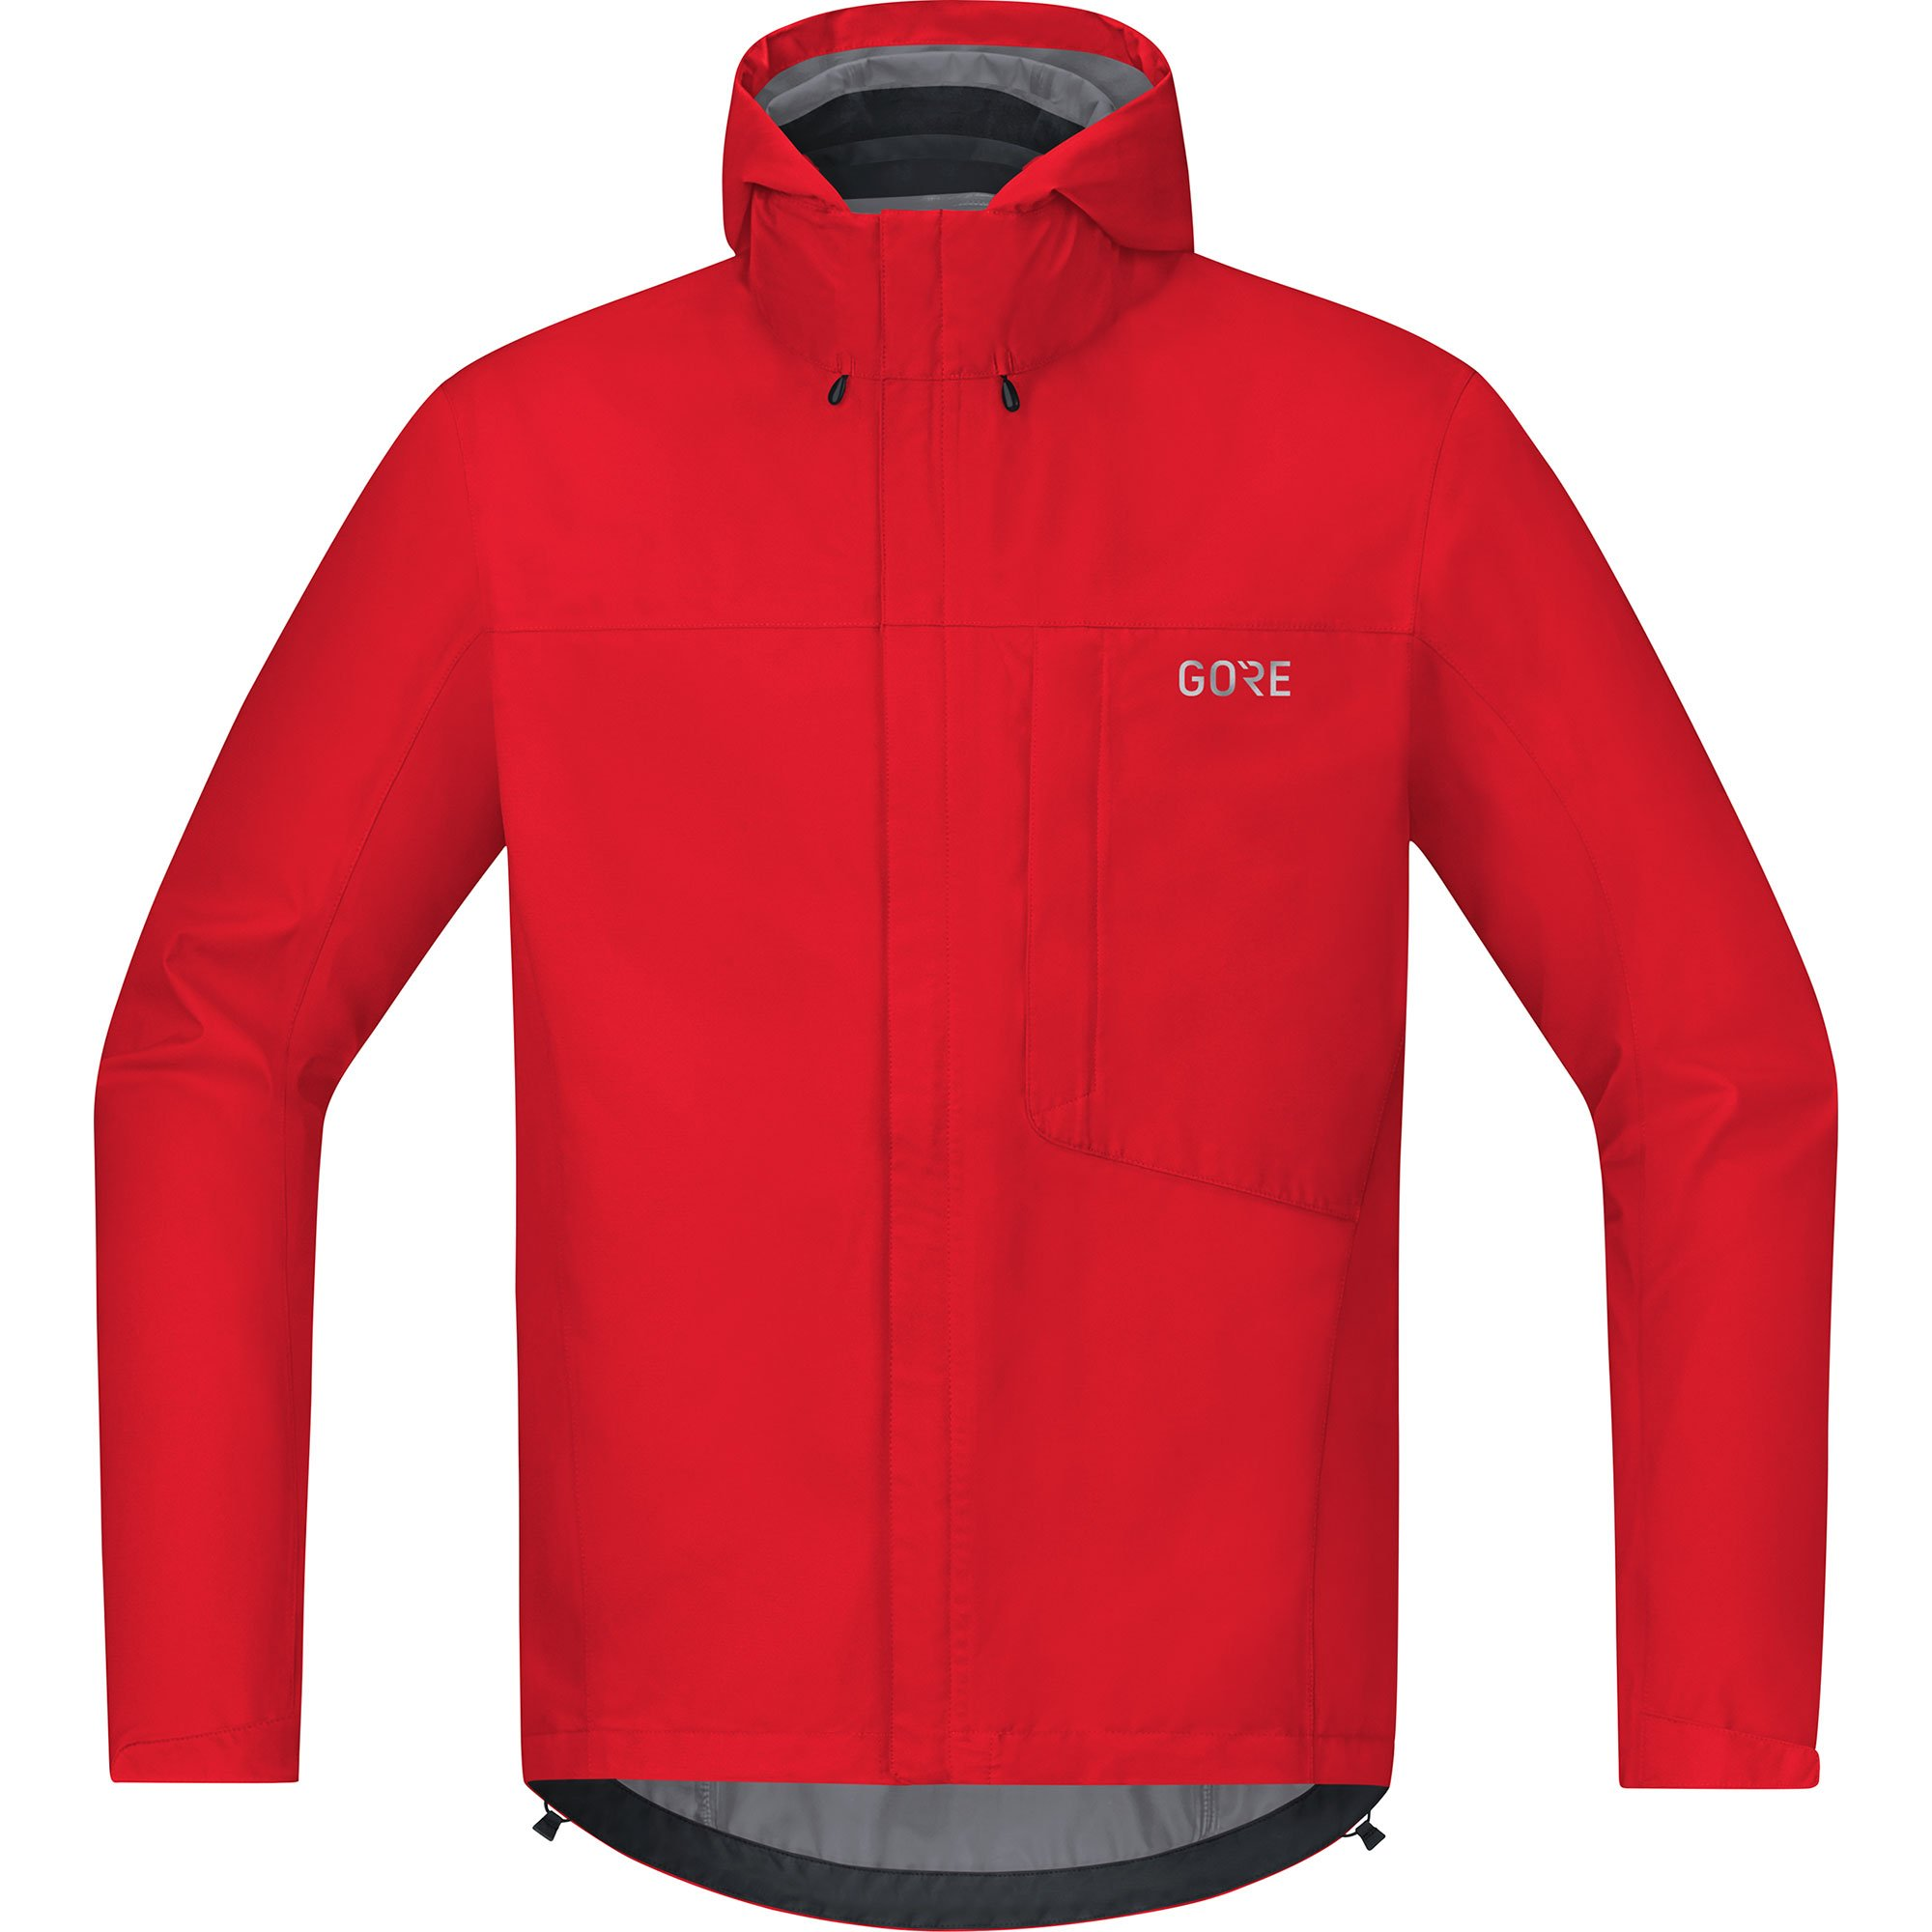 Gore Wear Men's Waterproof Hooded Bike Jacket, C3 TEX Paclite Hooded Jacket, Size: M, Color: red, 100036 by Gore Wear